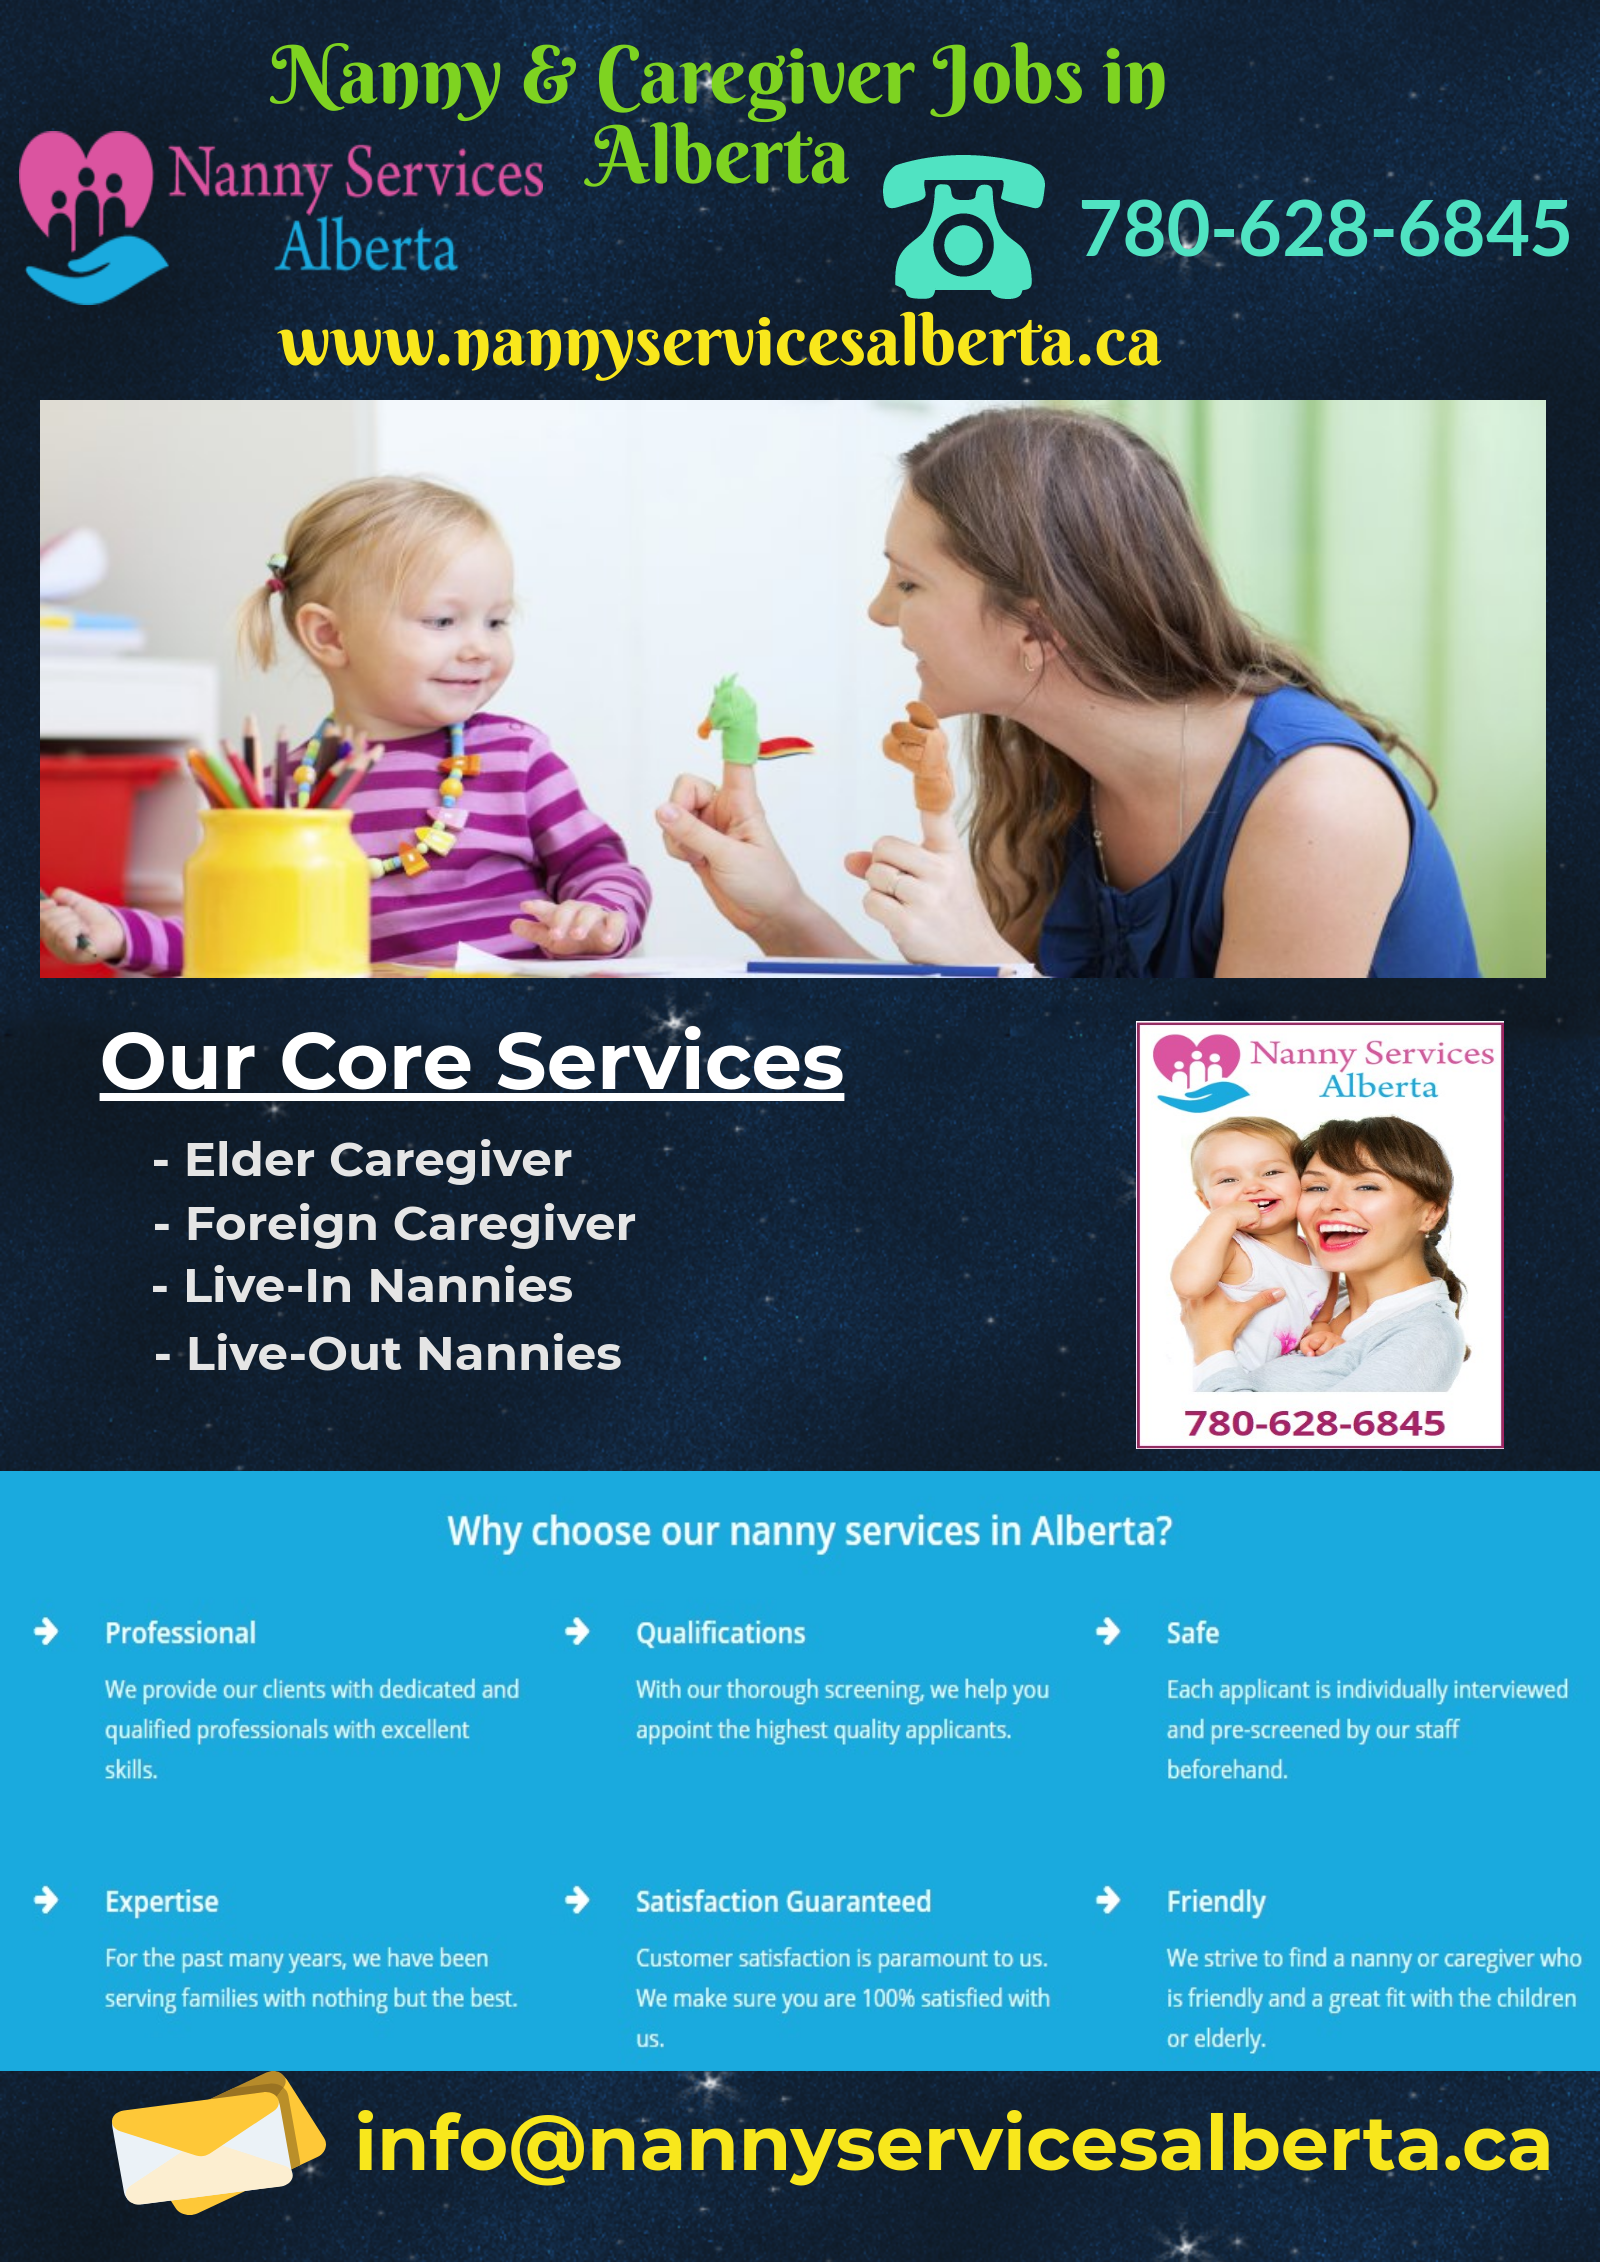 Professional Nanny & Caregiver Jobs in Alberta  We help you